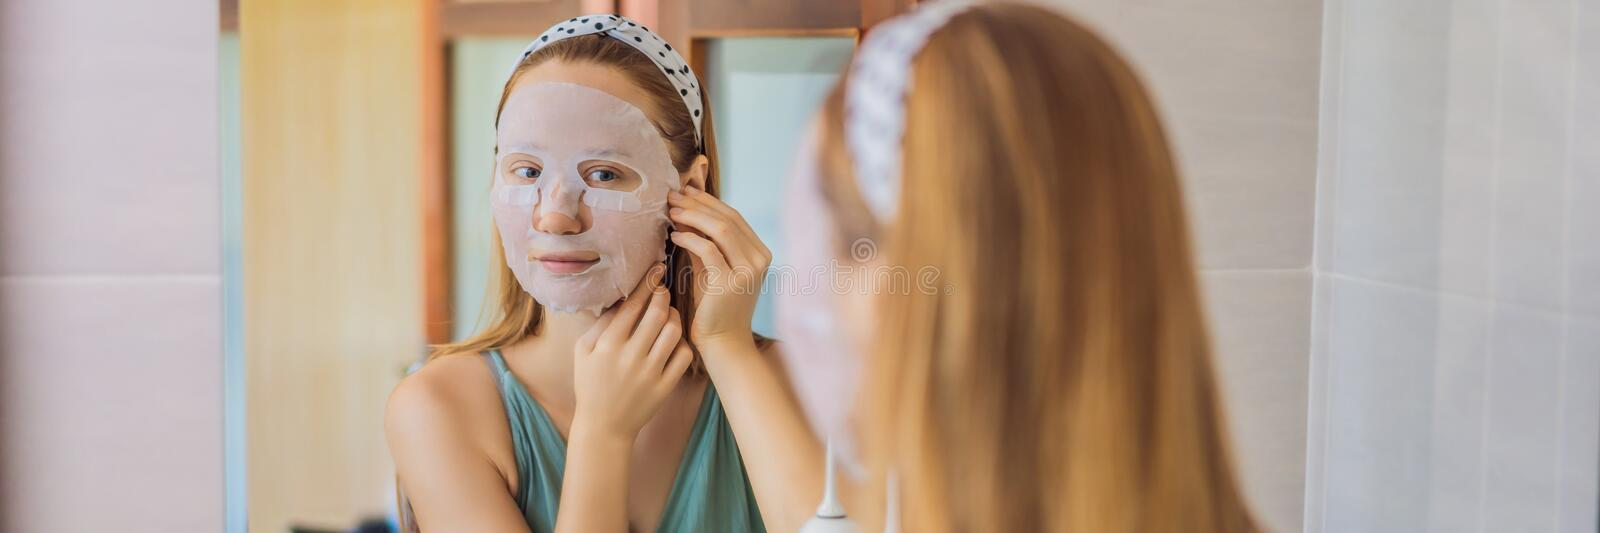 107 336 Beauty Banner Photos Free Royalty Free Stock Photos From Dreamstime